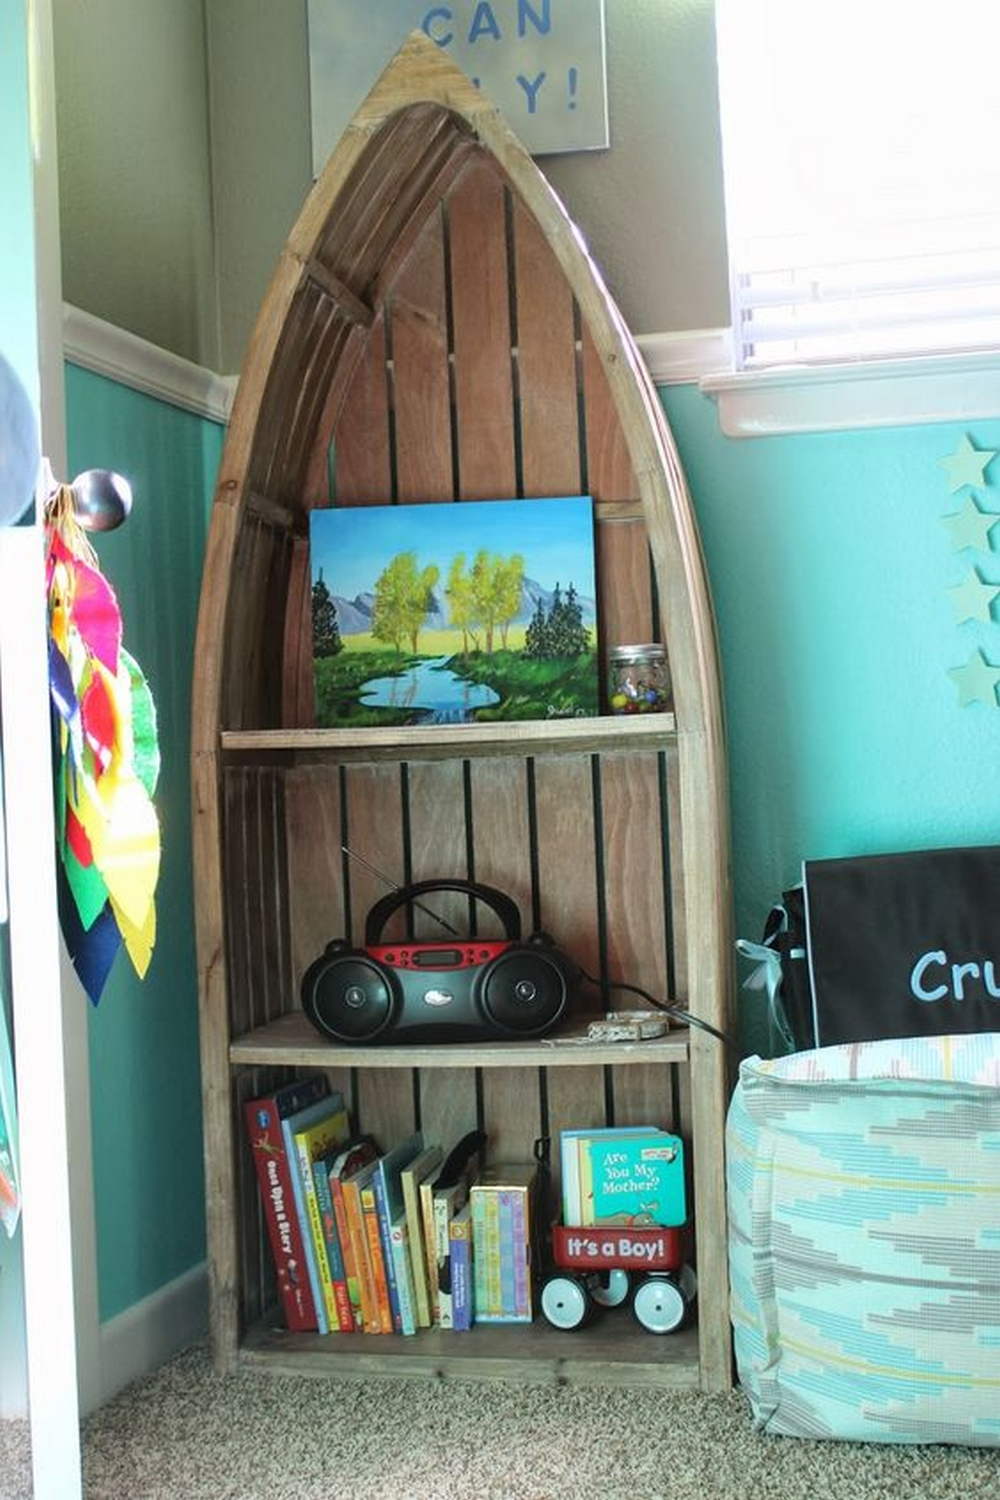 How To Build A Boat Bookshelf Your Projects Obn